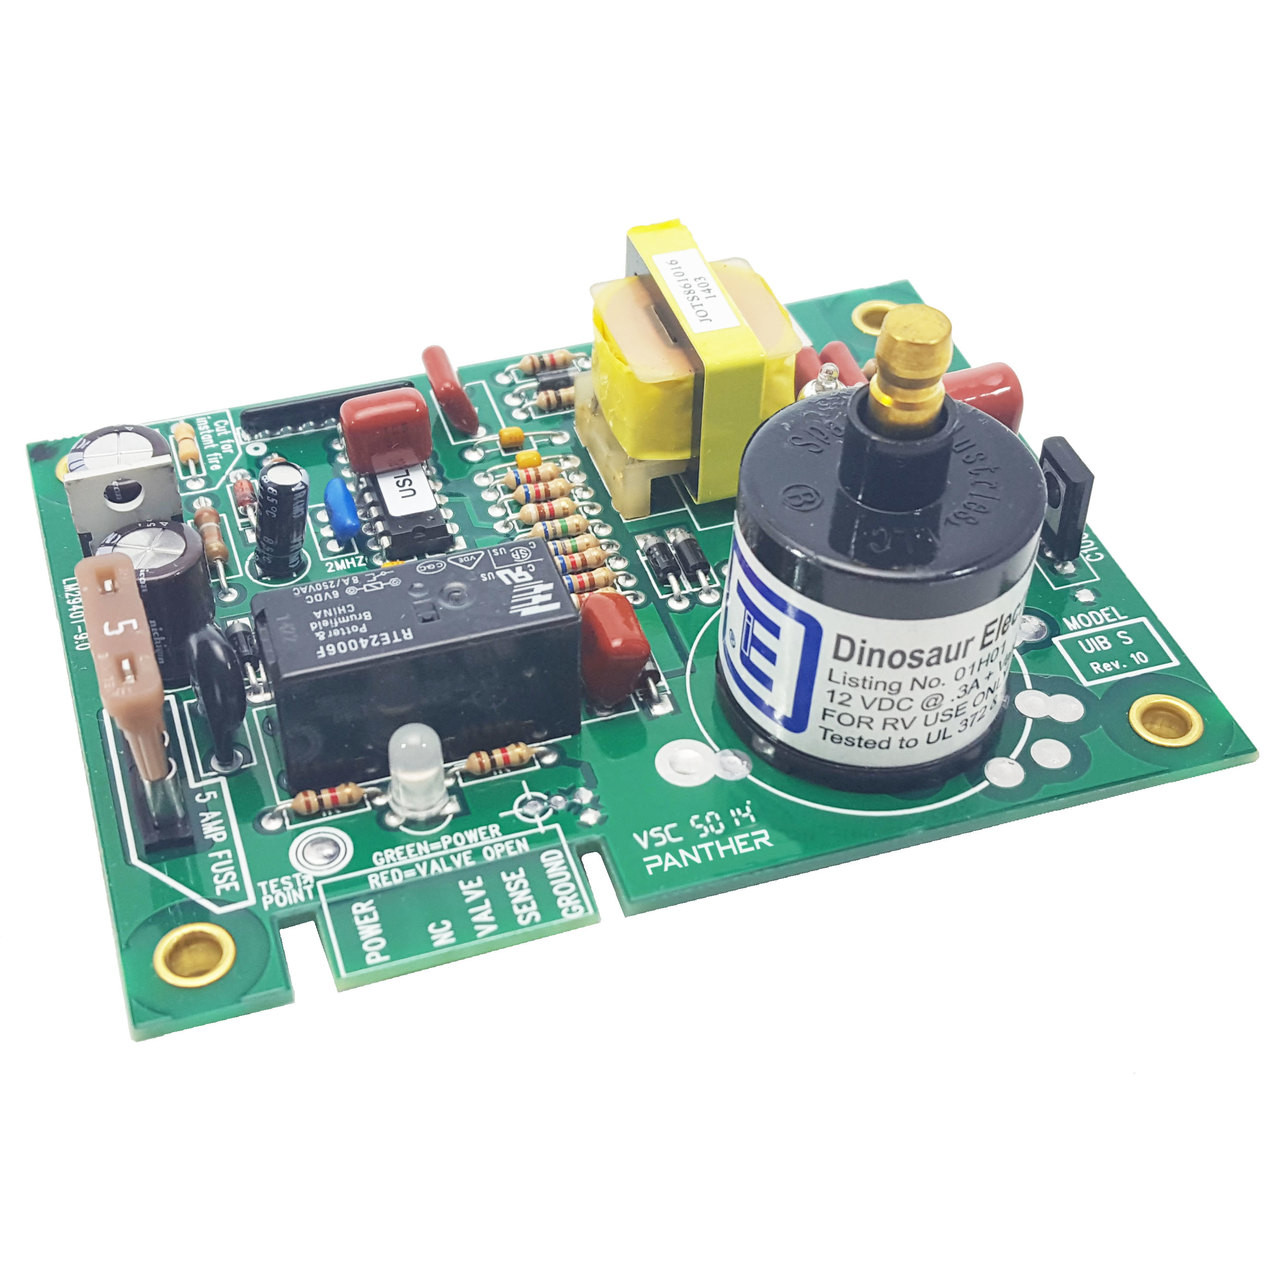 Dinosaur Board For Furnace Wiring Diagram - WIRE Center •